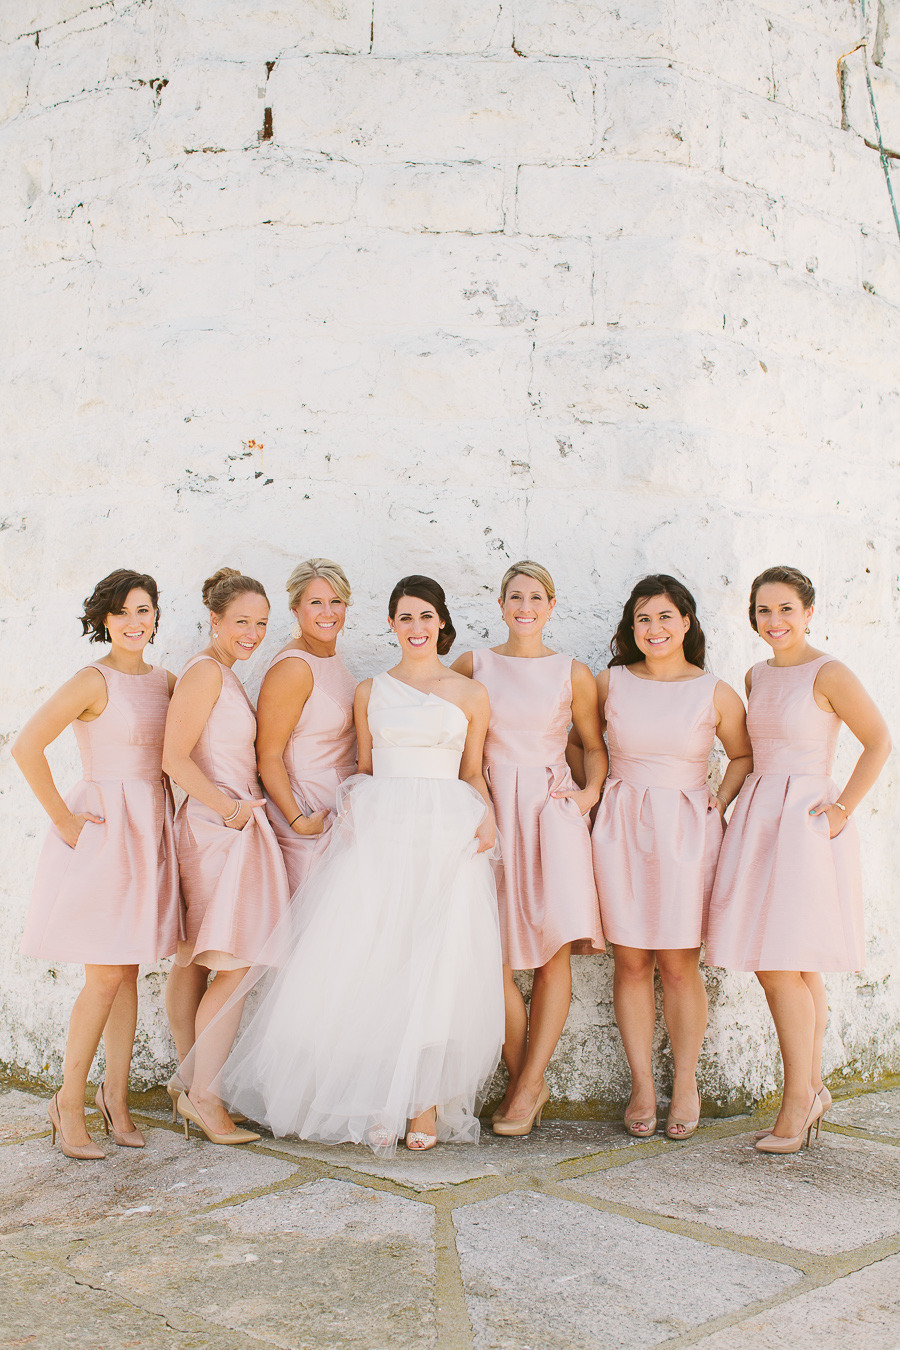 Rhode-Island-wedding-18-11232014ak